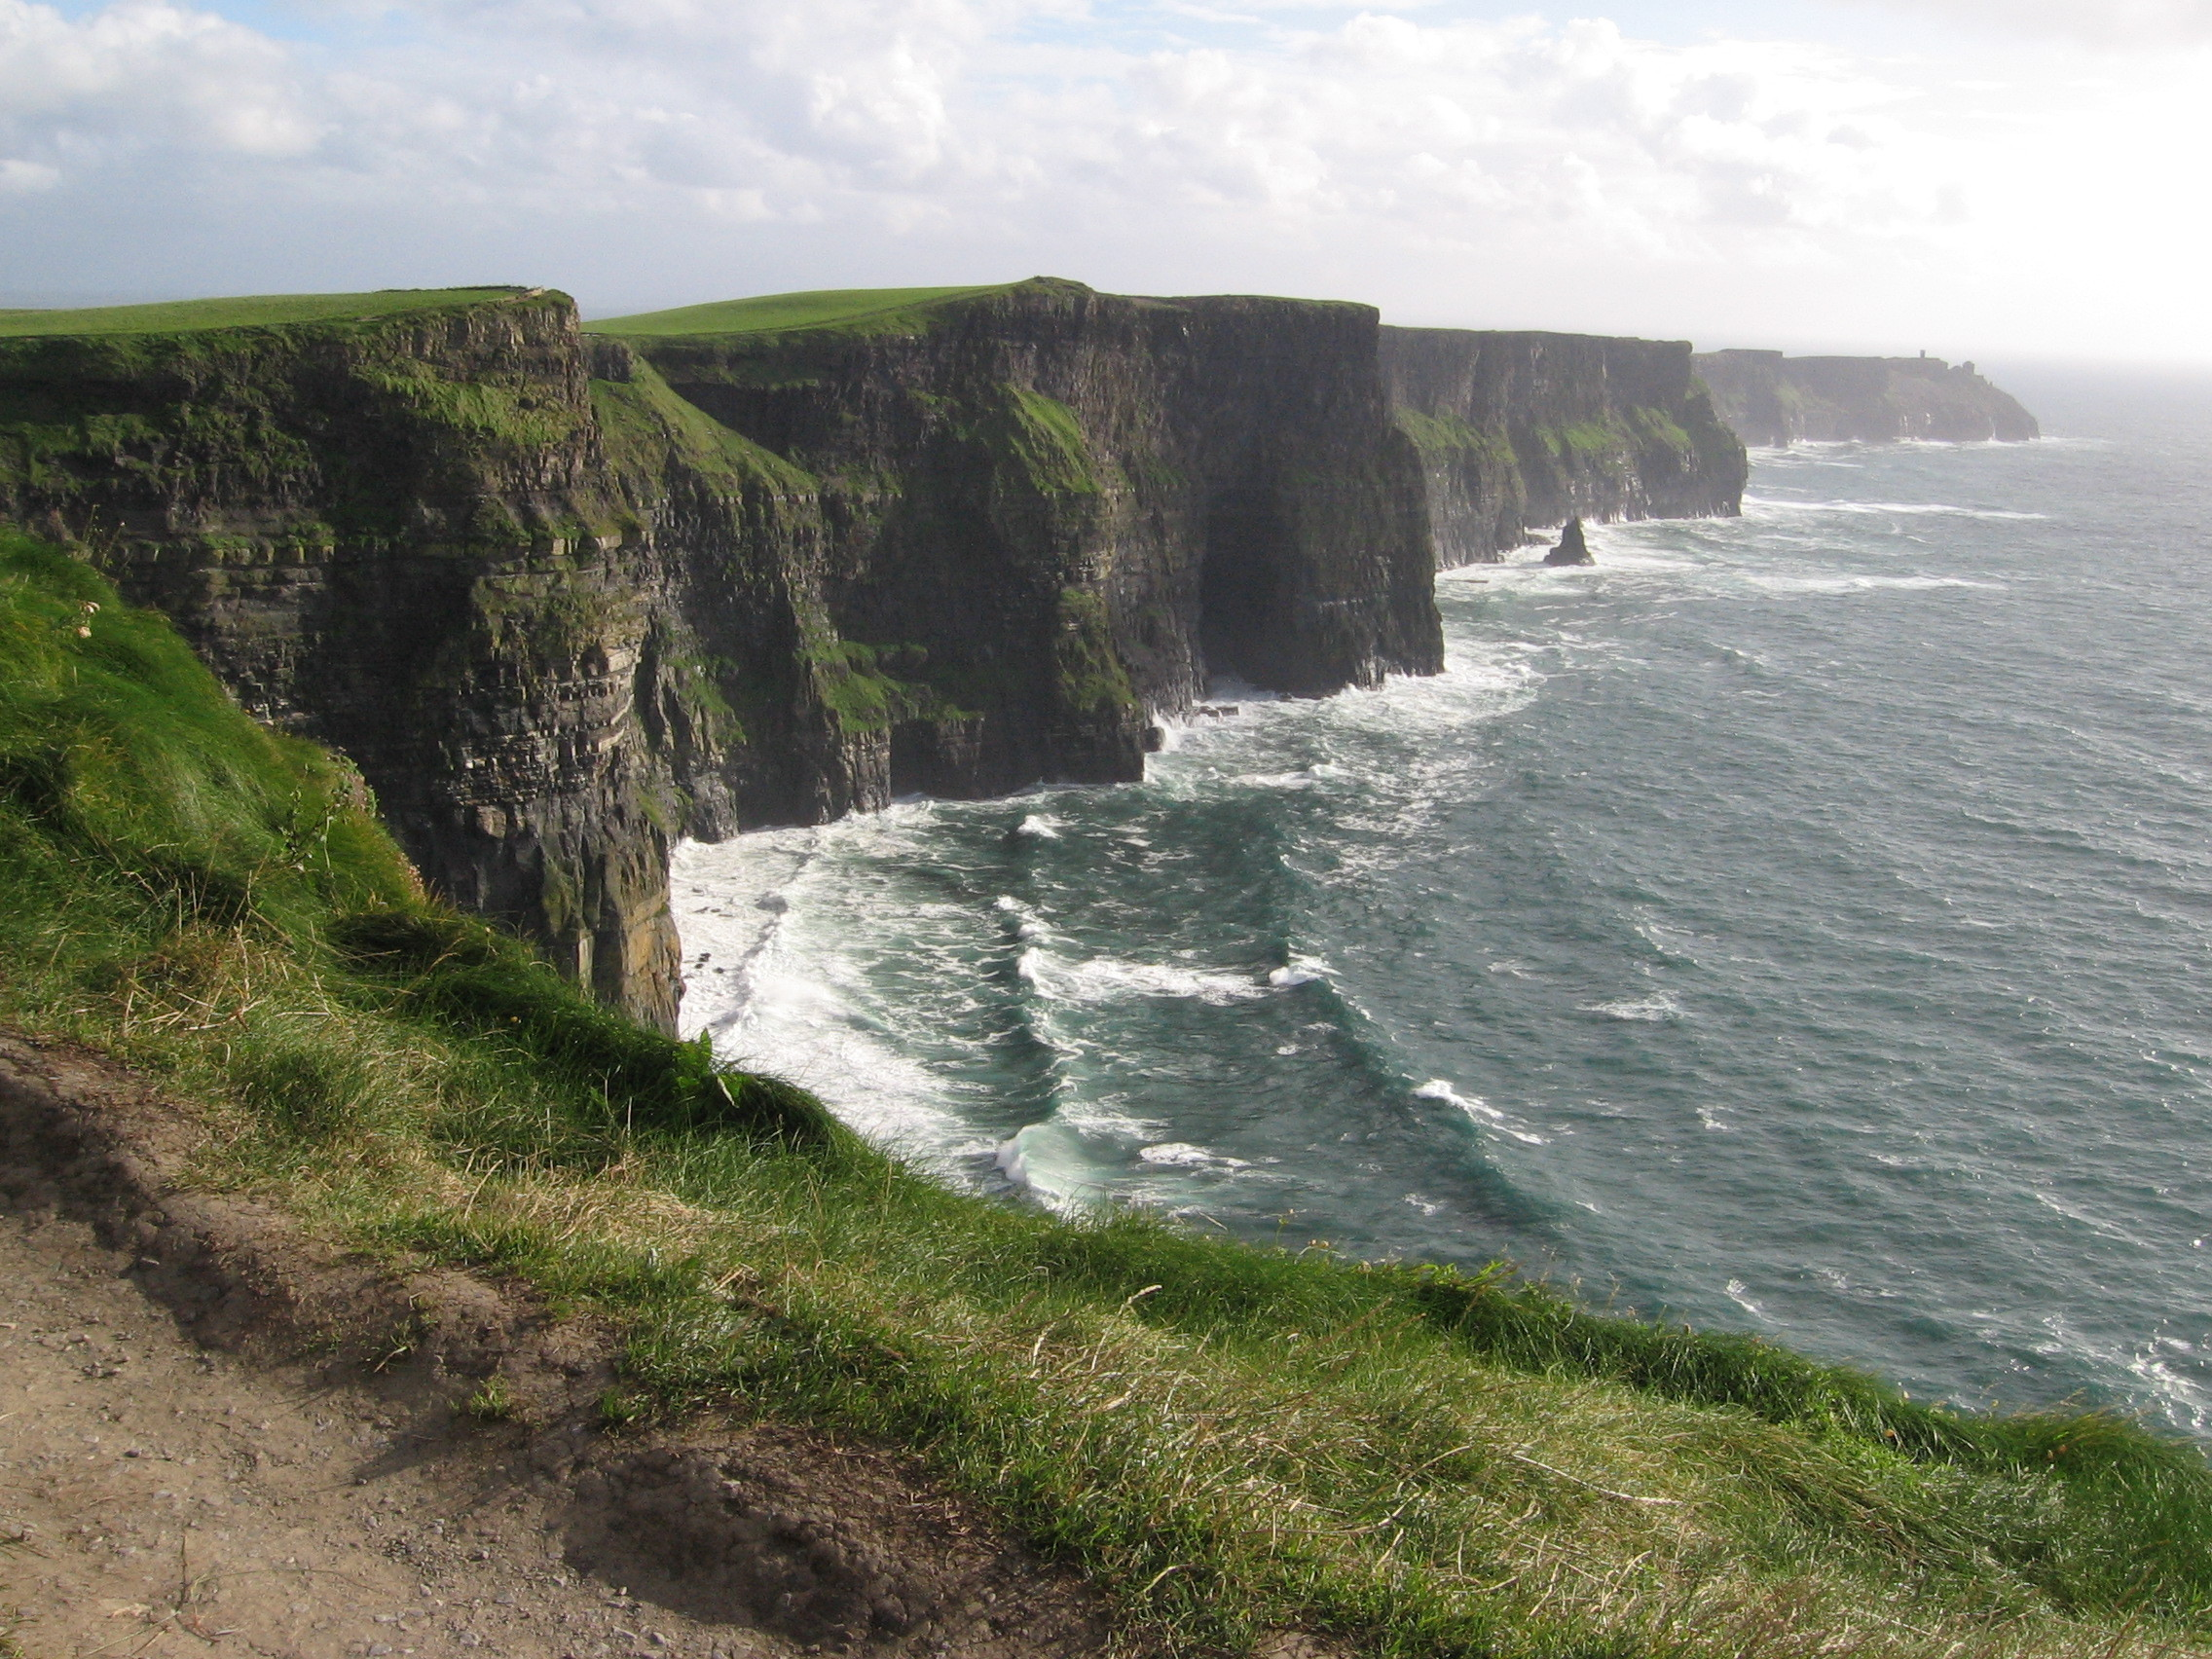 Philippines view spots and places cliffs of moher in liscannor ireland - Cliffs of moher pictures ...